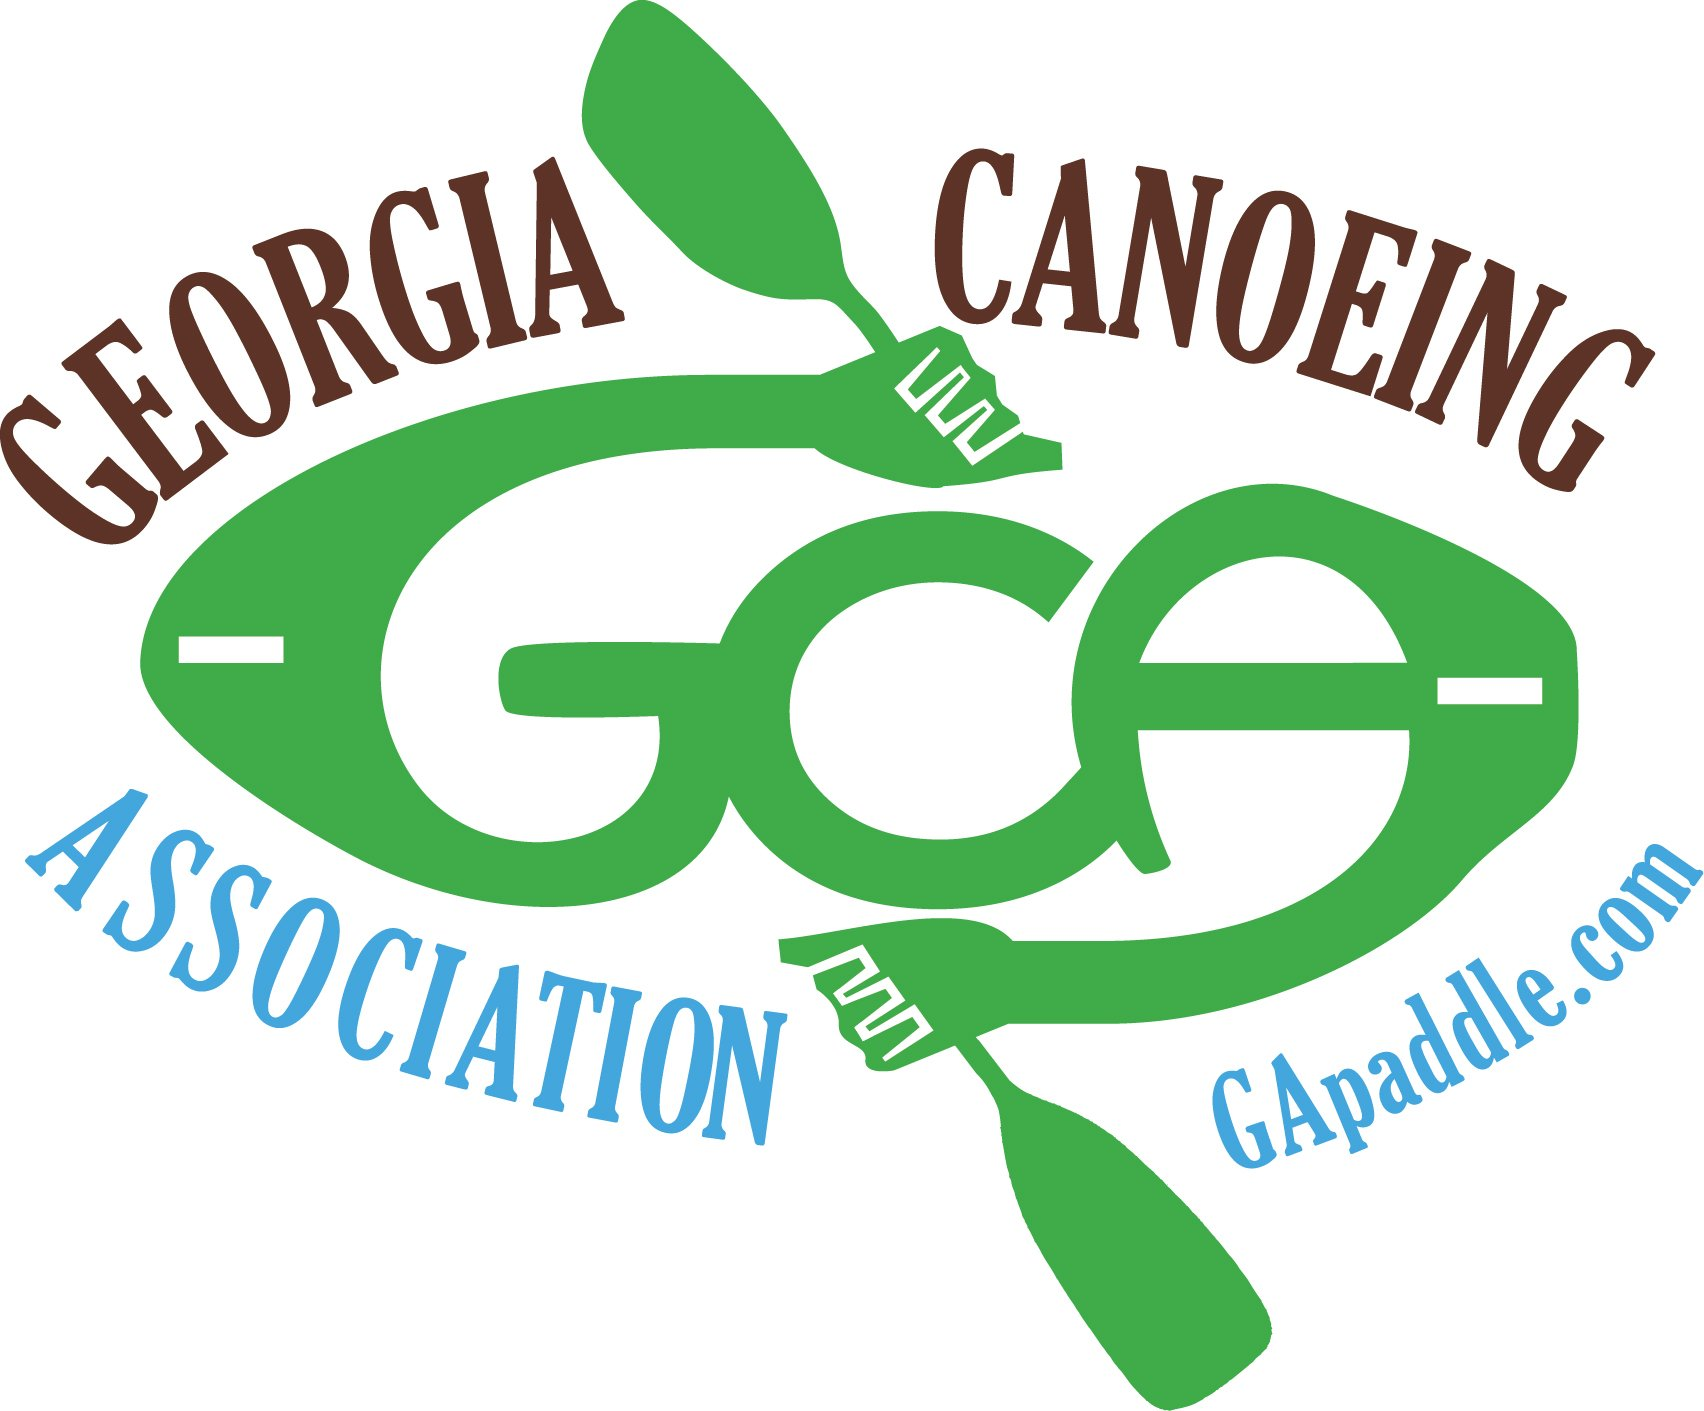 Georgia Canoeing Association